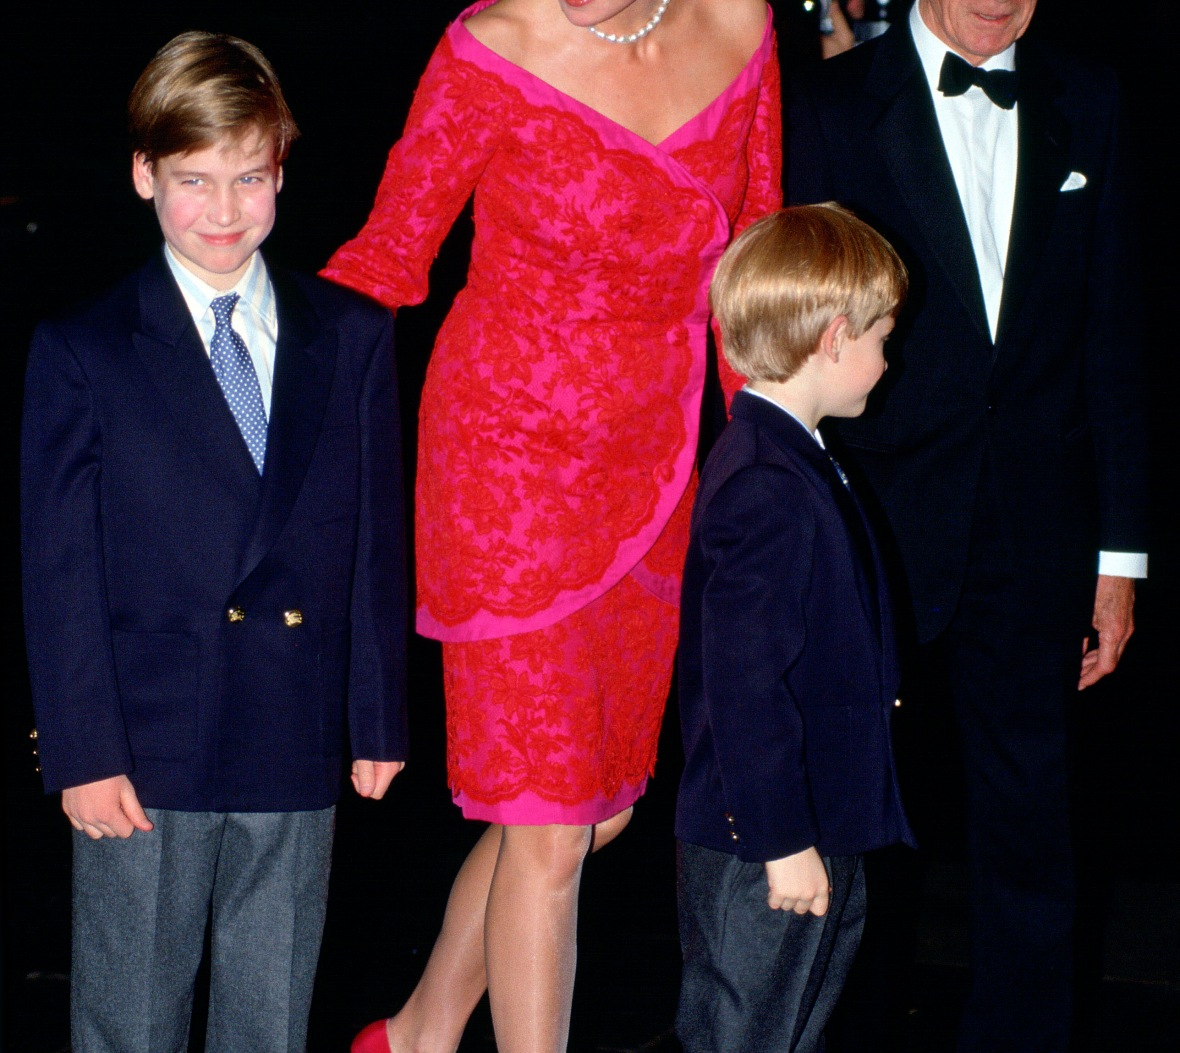 prince william 1991 - getty